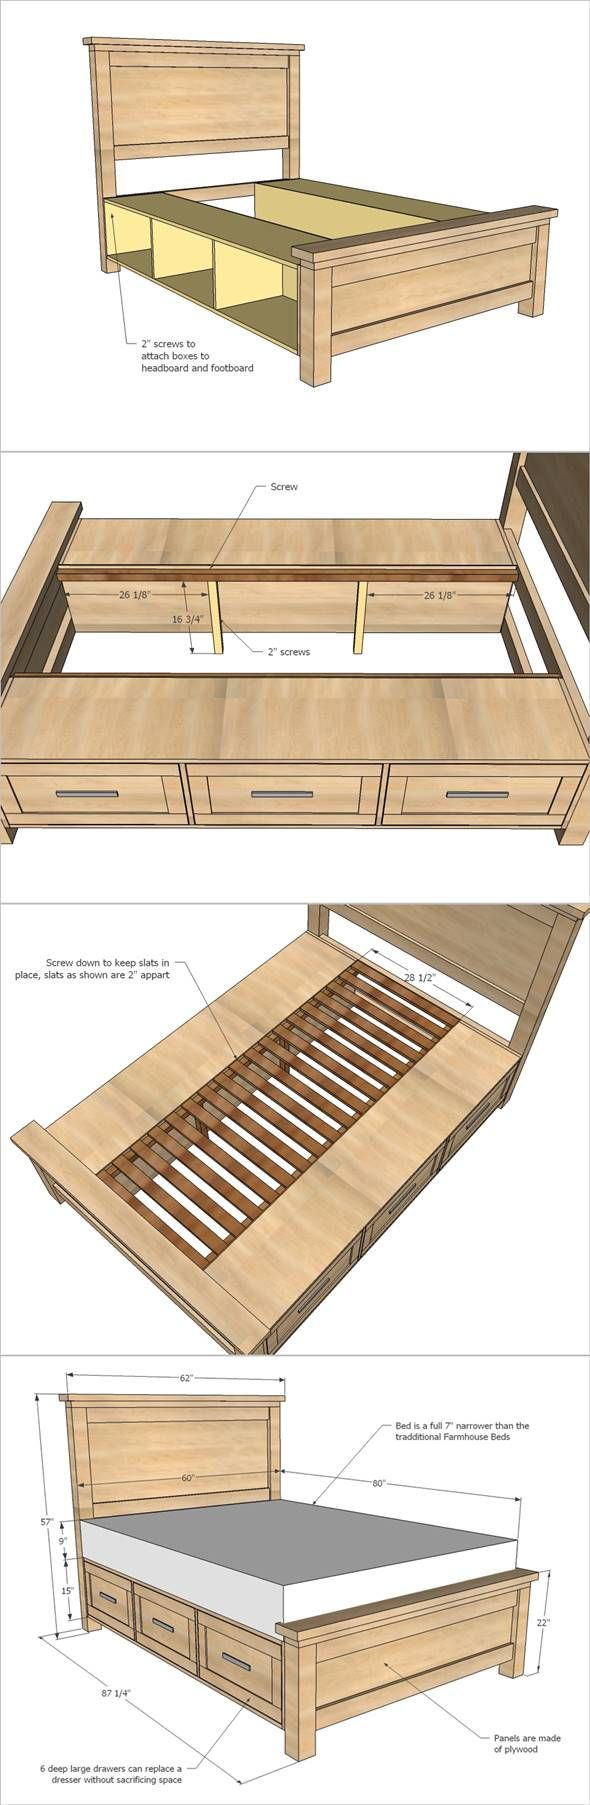 Bed frame design with drawers - Creative Ideas How To Build A Farmhouse Storage Bed With Drawers